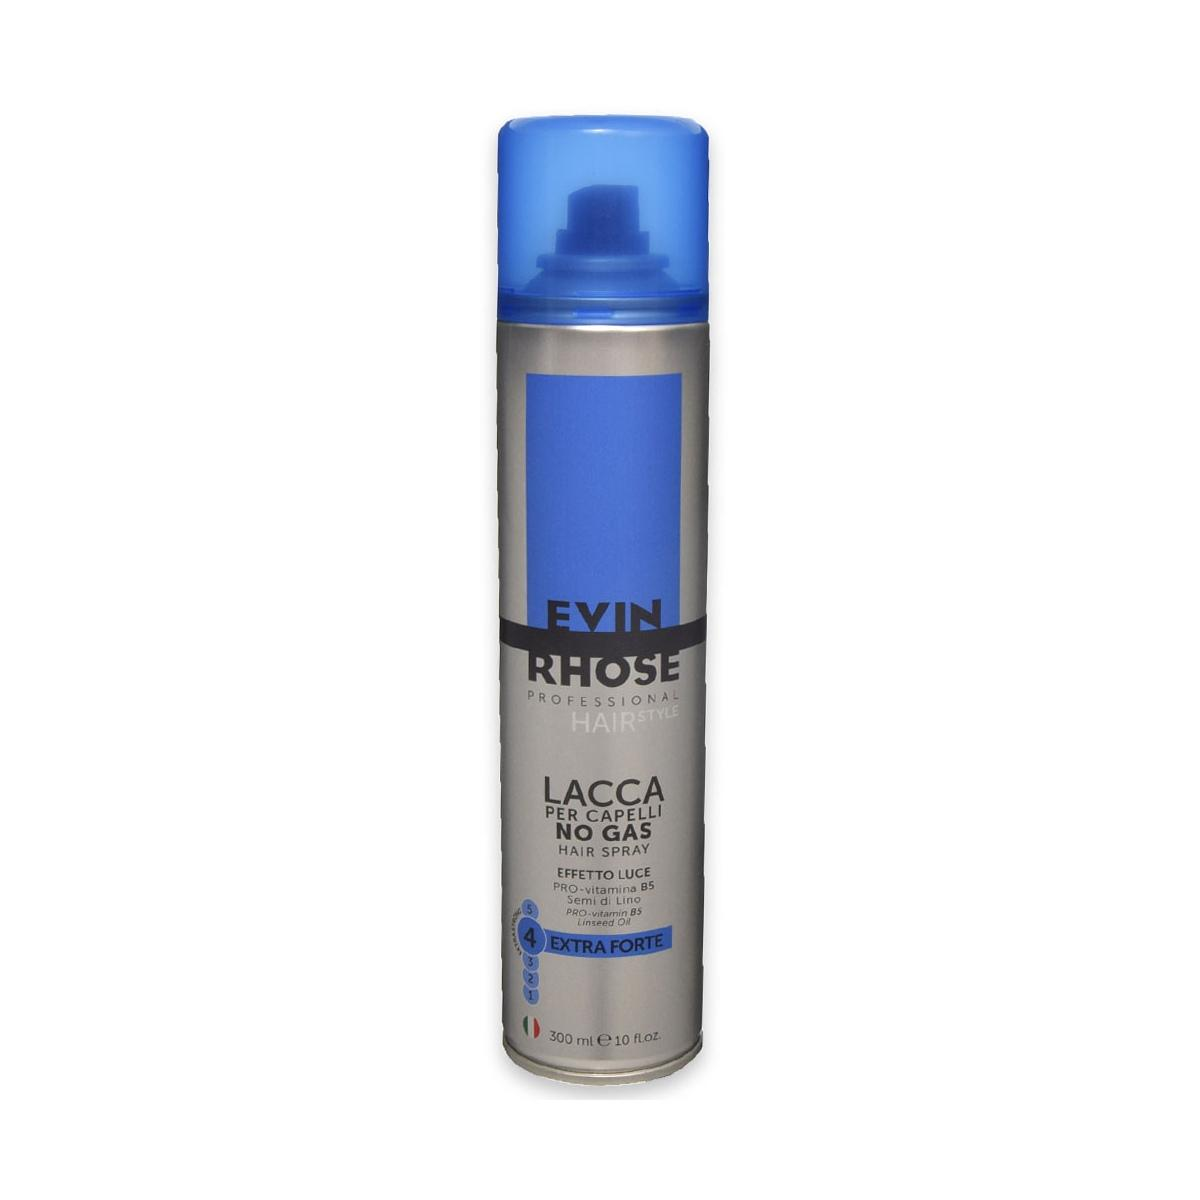 Lacca capelli no gas extra strong 300 ml evinrhose